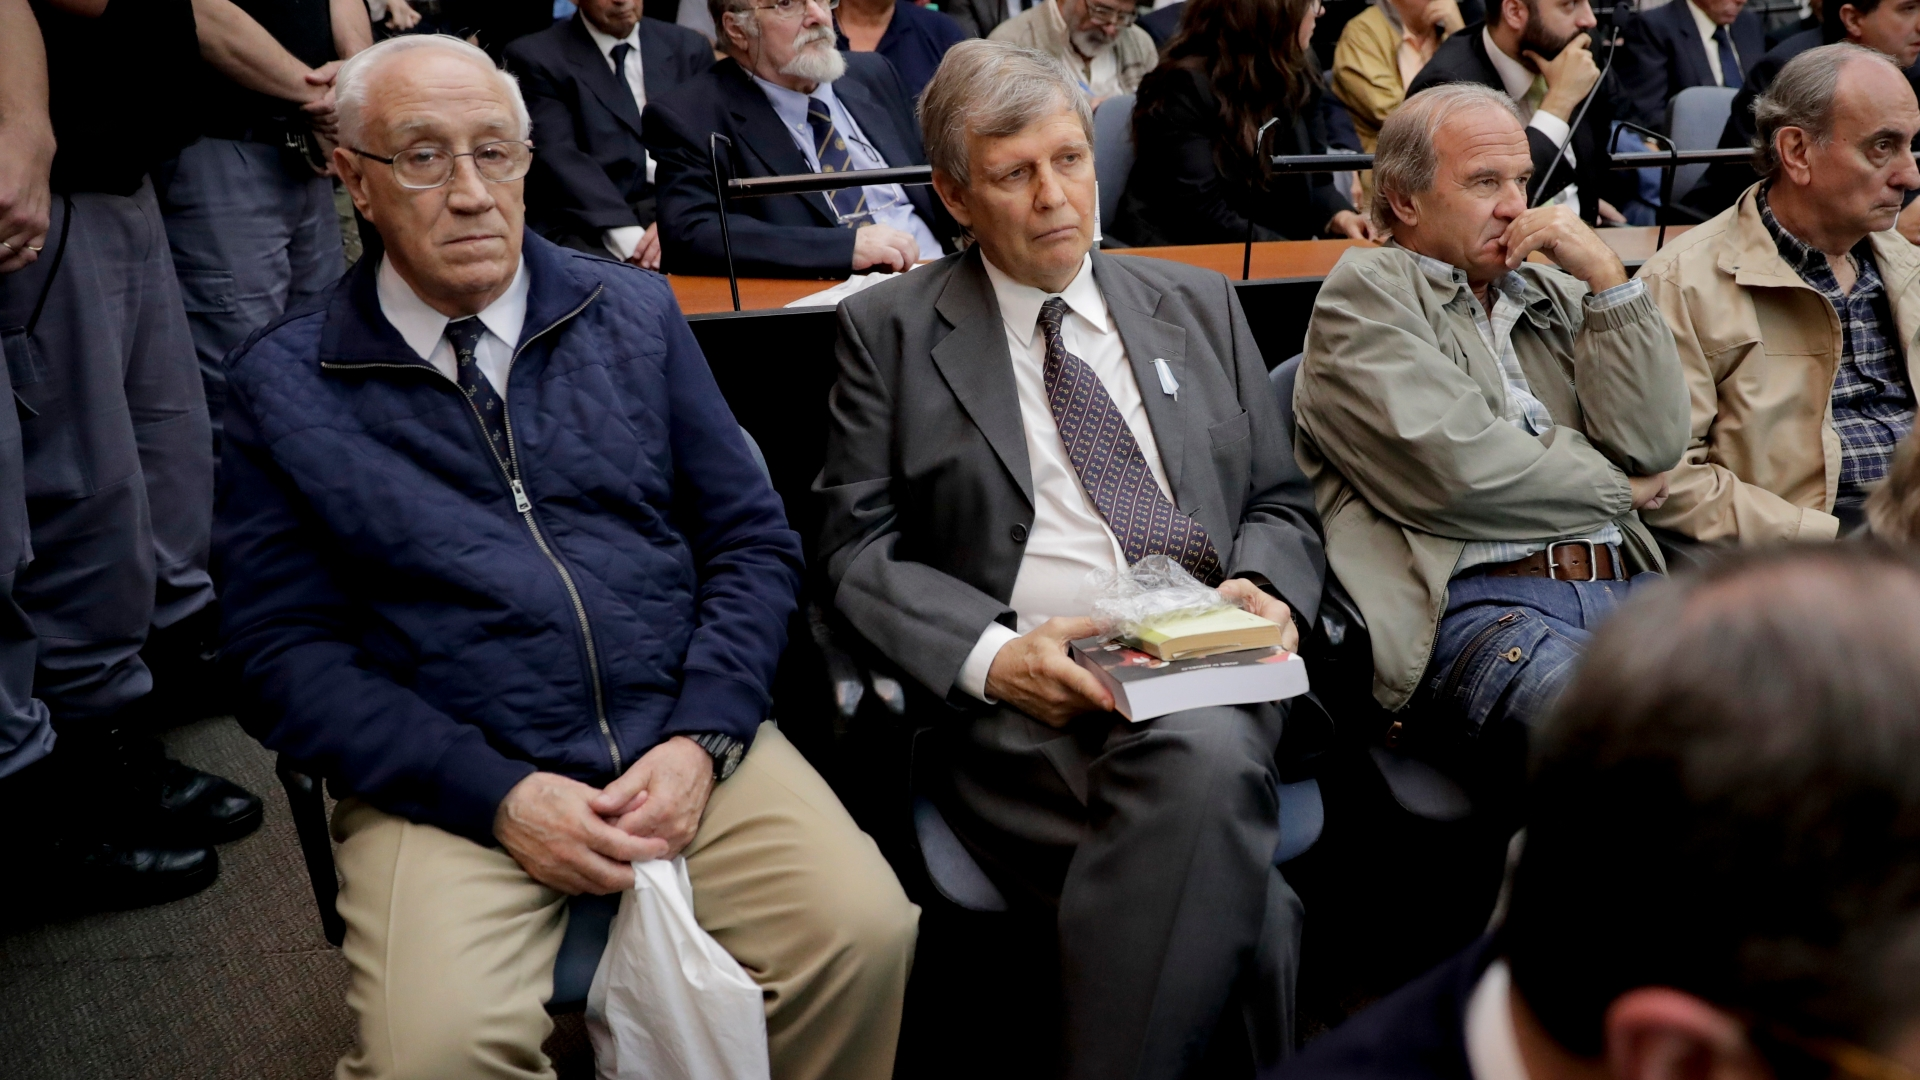 Angel Of Death 2017 'blond angel of death,' others sentenced in argentina for dictatorship-era  crimes